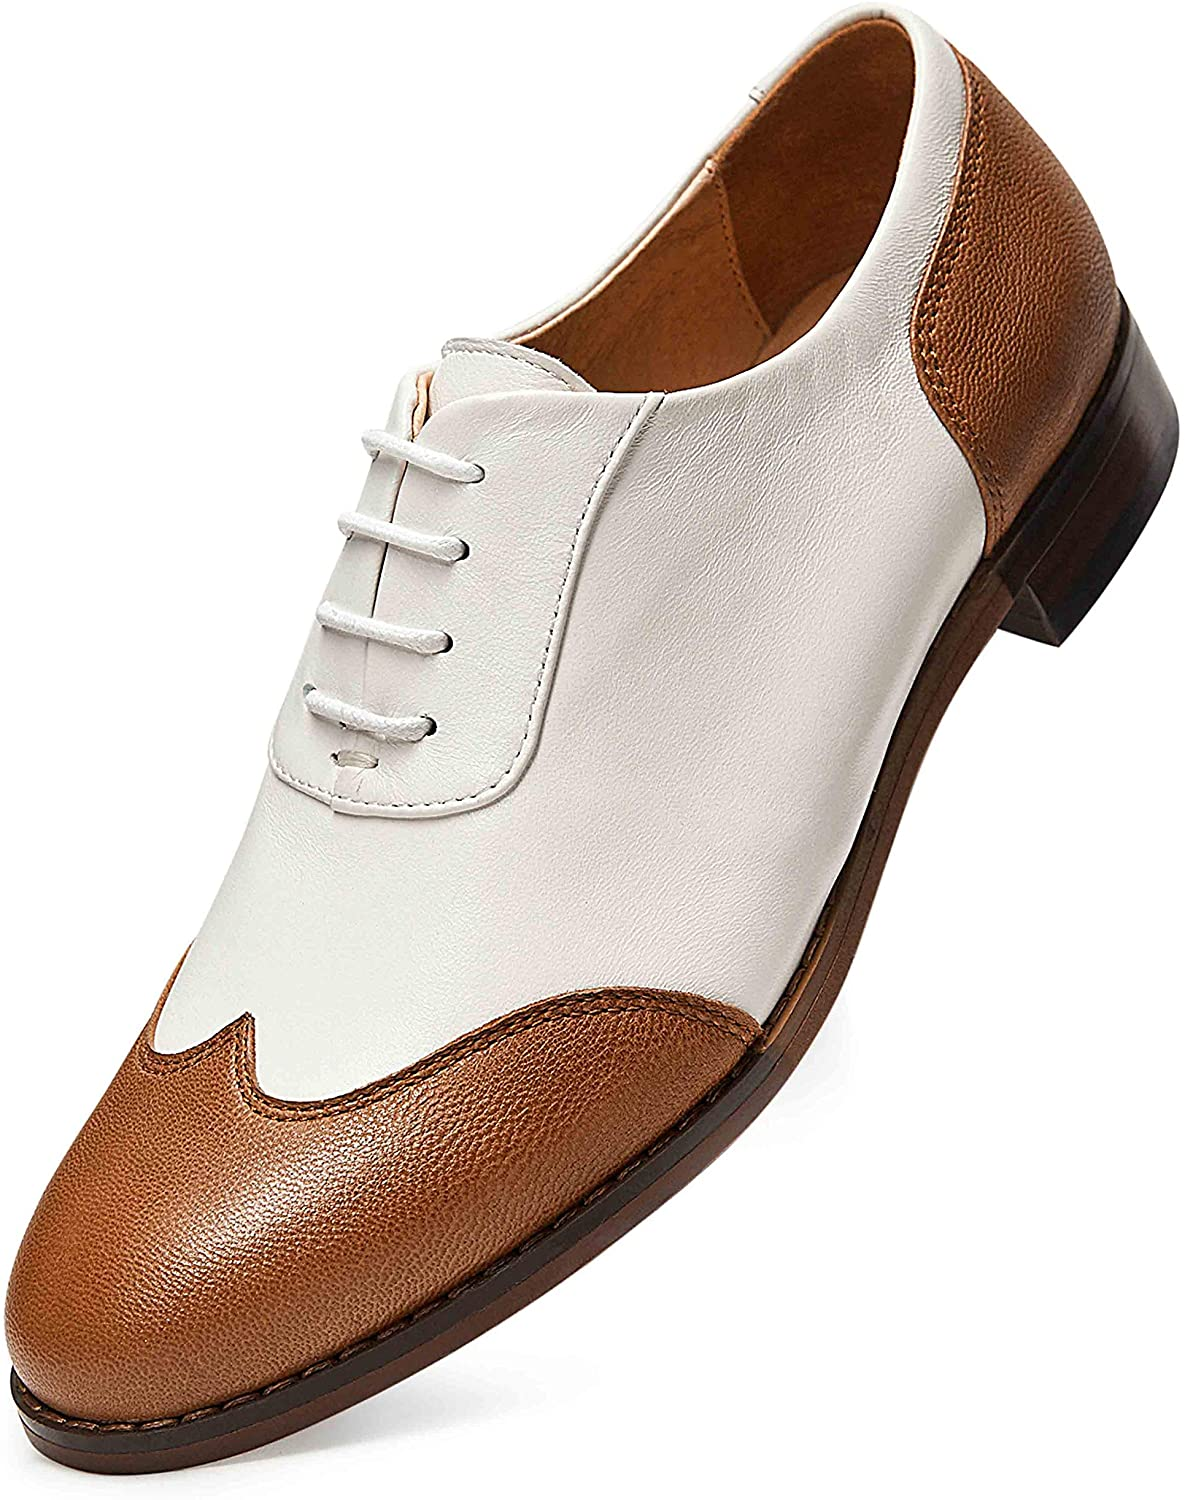 FRASOICUS Women's Oxfords Brogue Leather Wingtip Lace up Flats Formal Wedding Dress Shoes for Girls Ladies